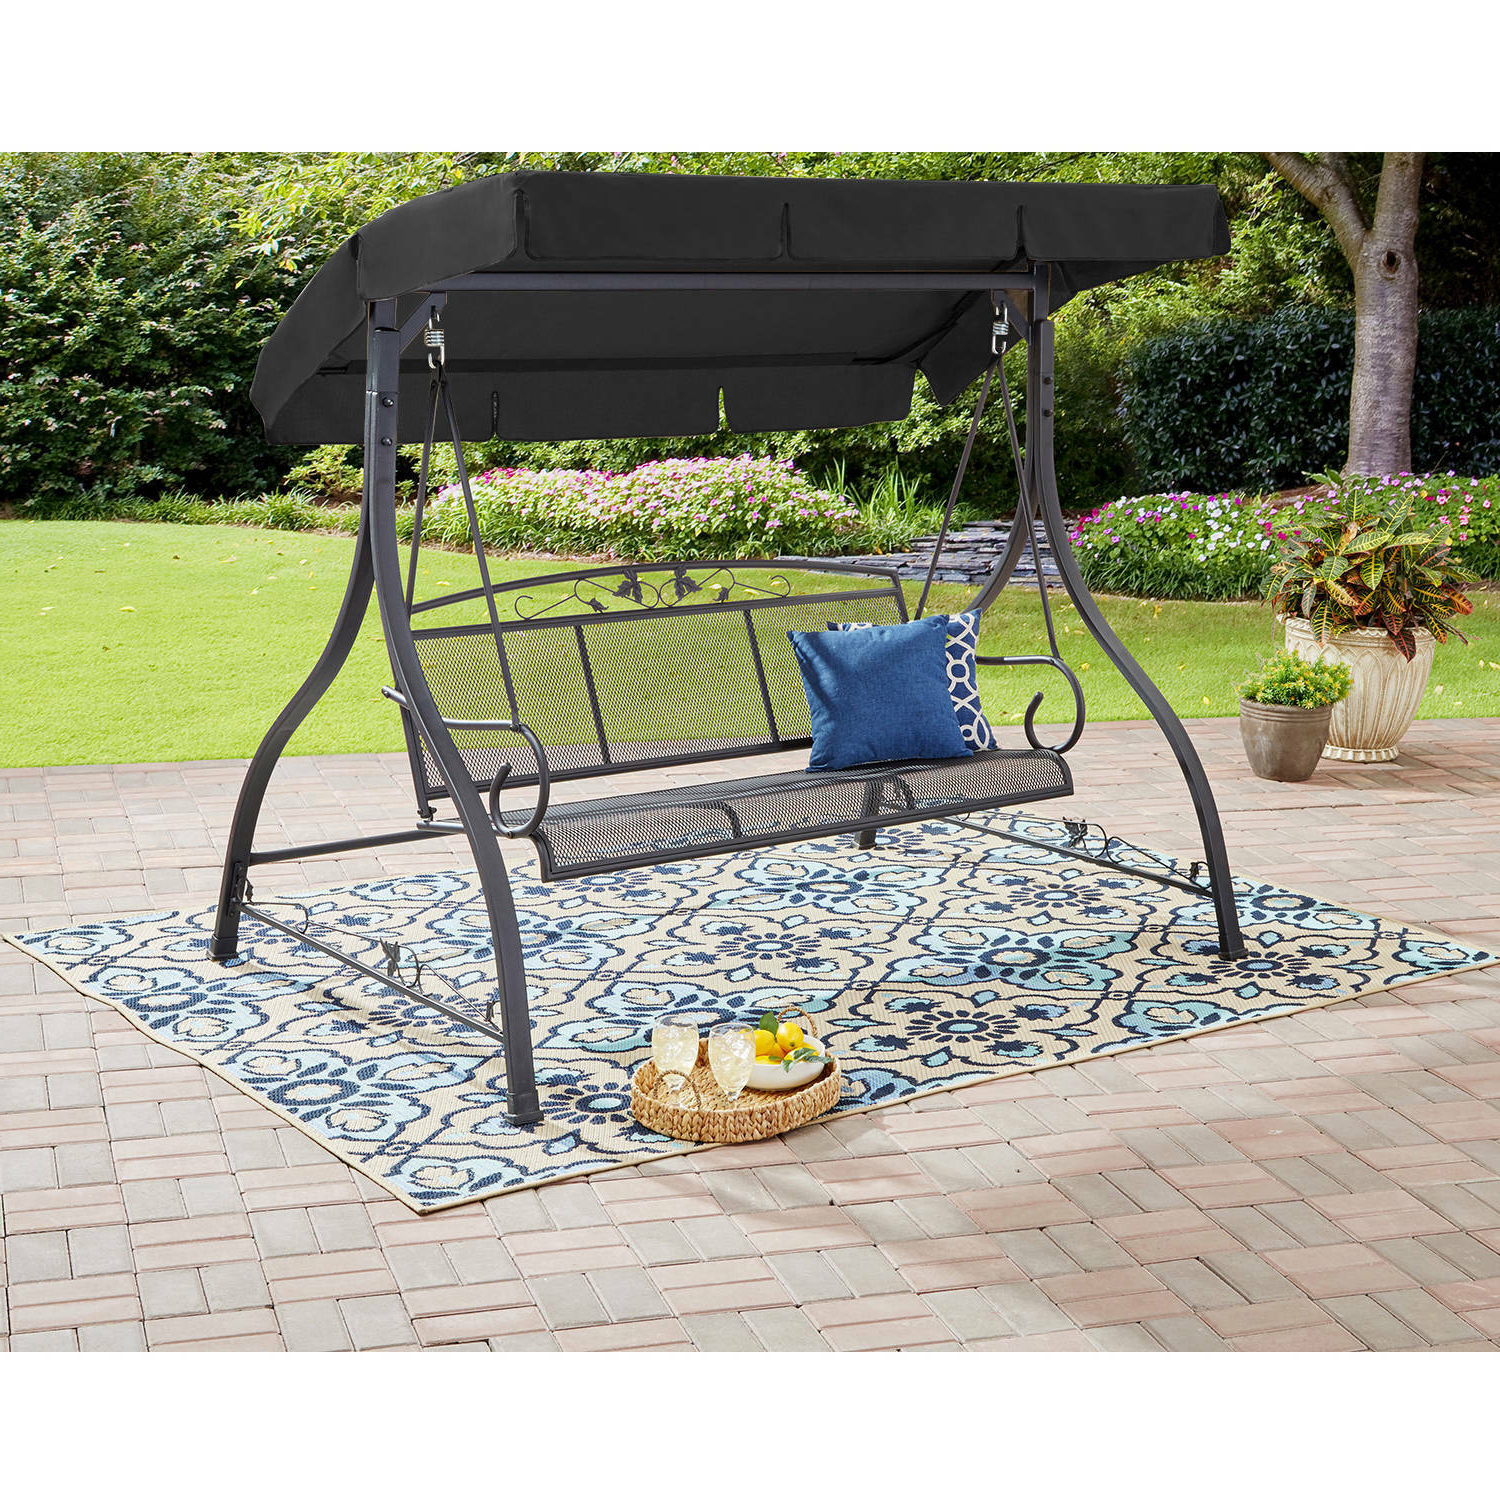 Details About Outdoor 3 Person Swing Set Metal Bench Canopy Patio Porch Loveseat Deck Throughout Latest 2 Person Adjustable Tilt Canopy Patio Loveseat Porch Swings (View 25 of 30)